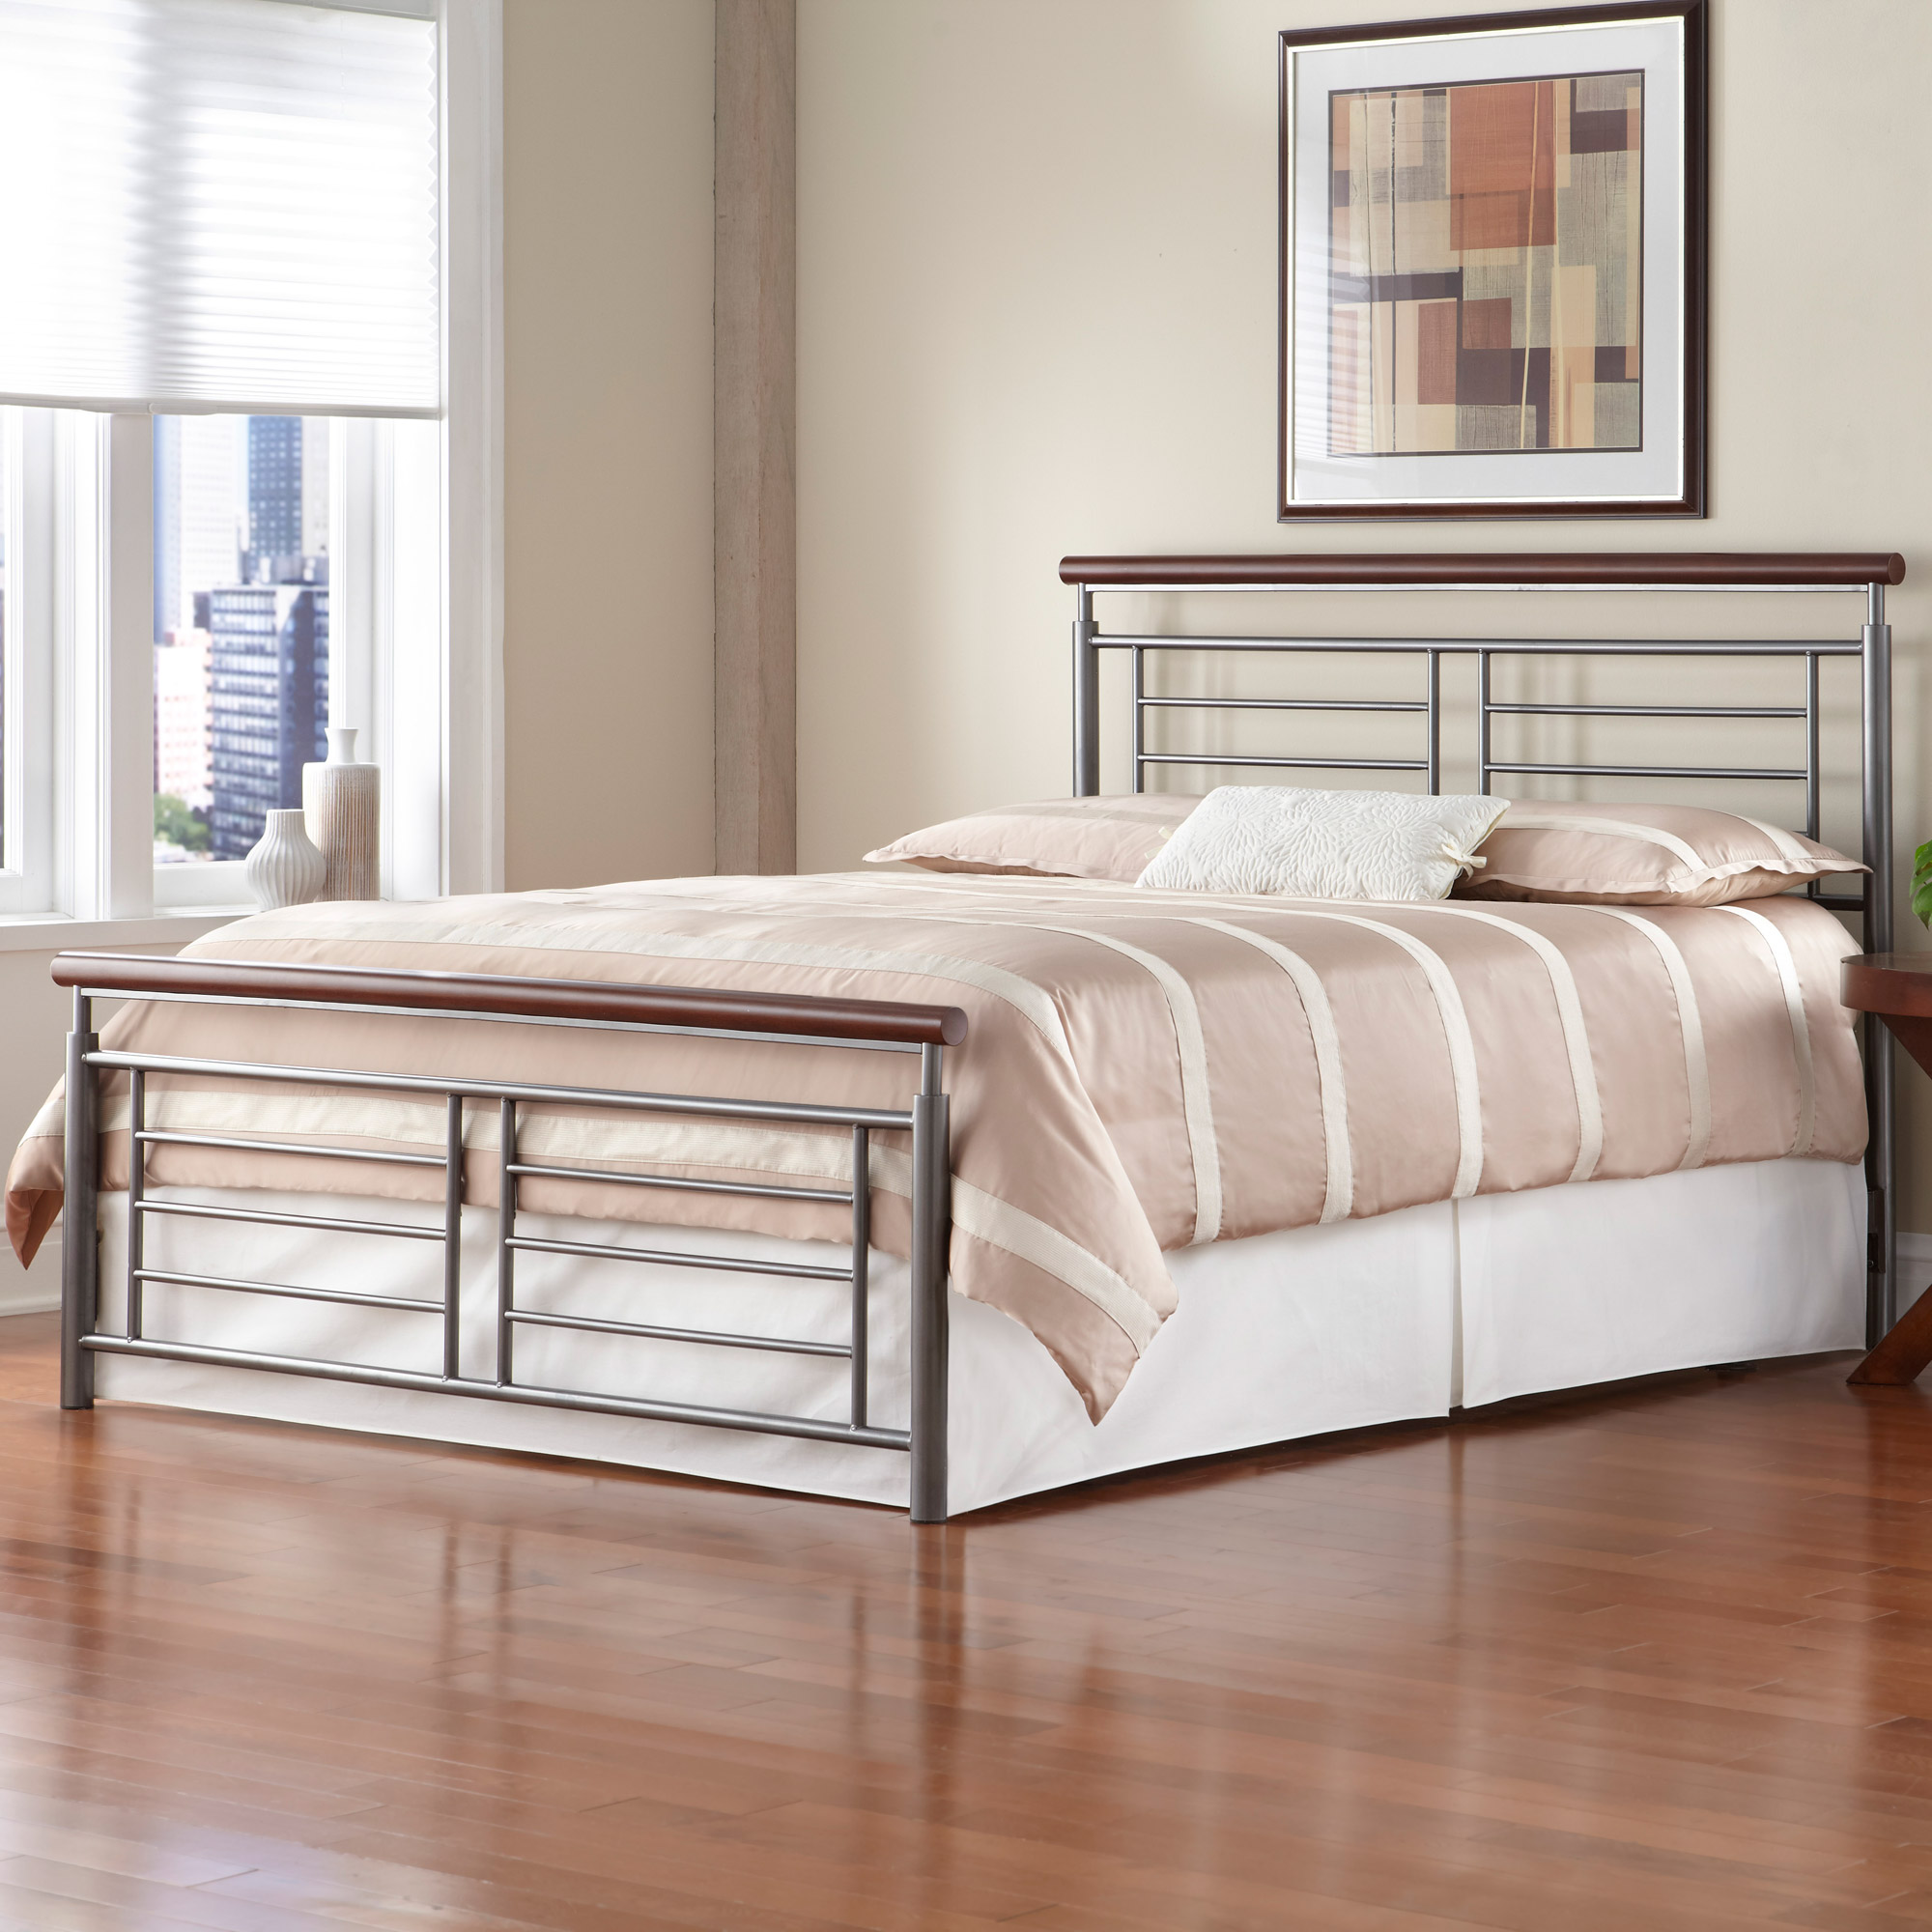 Fontane Iron Bed SilverCherry Metal Contemporary Design